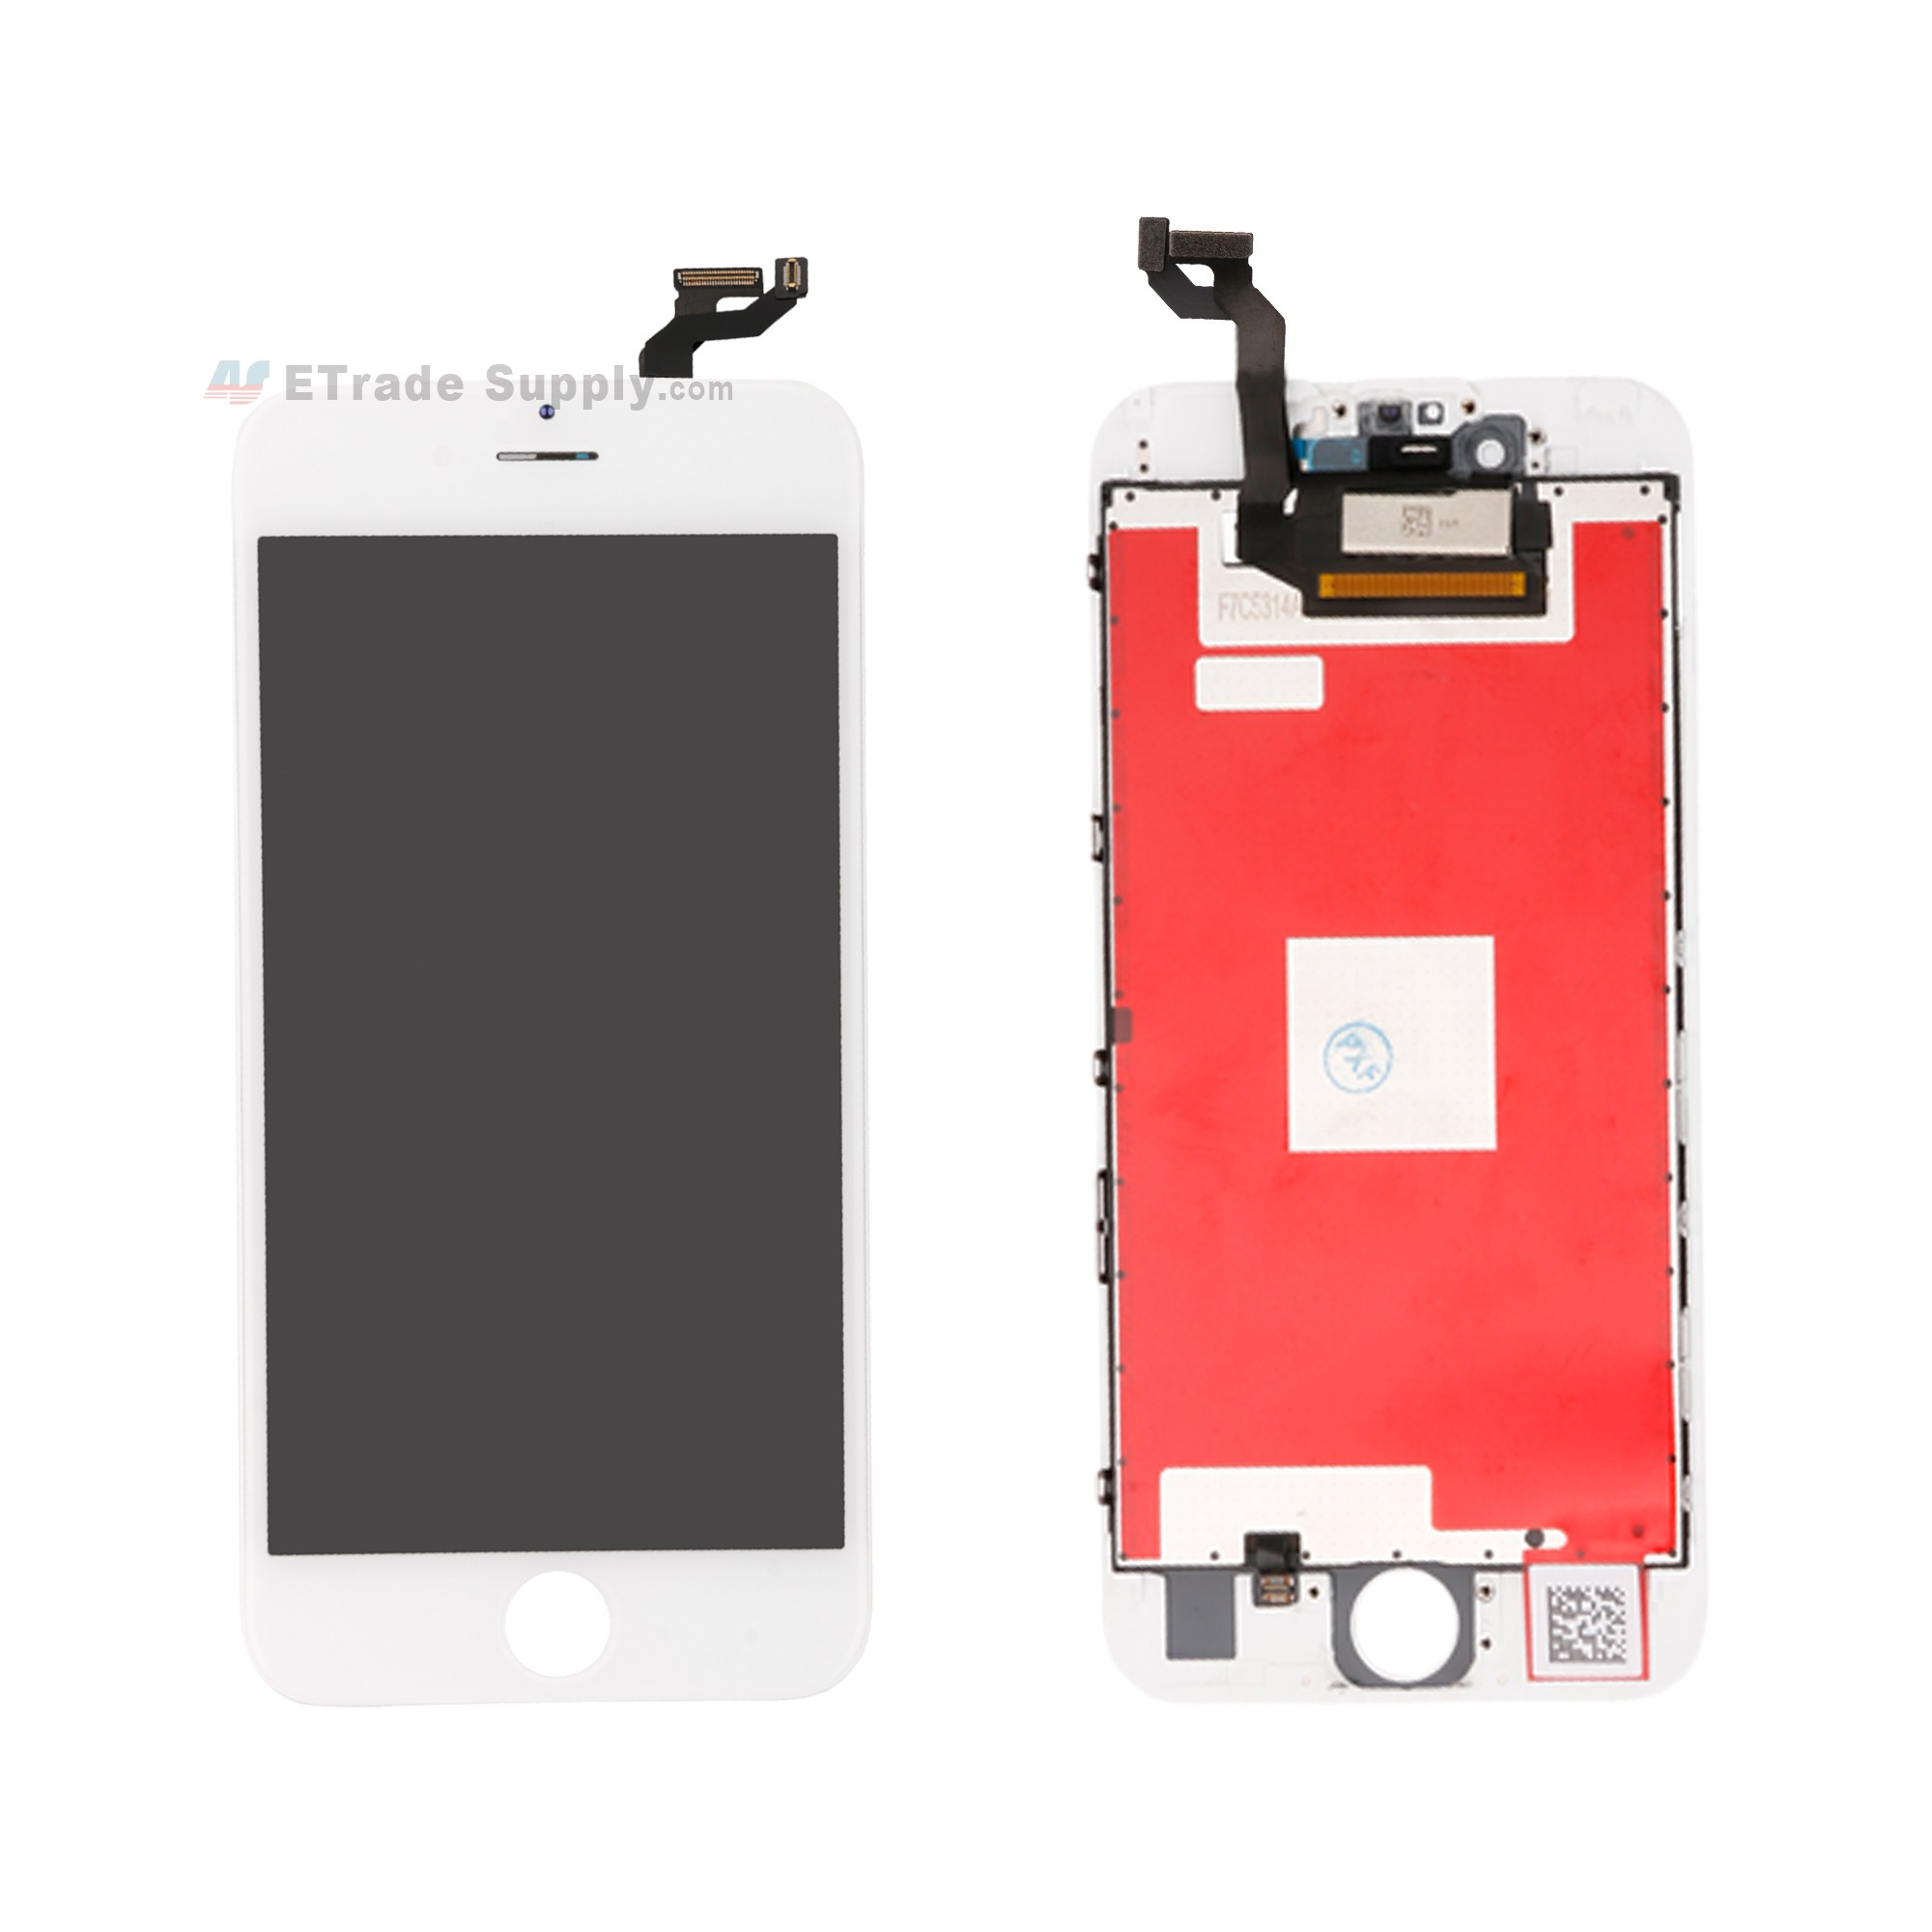 2f2fe2226 For Apple iPhone 6S Plus LCD Screen and Digitizer Assembly with Frame  Replacement - White -